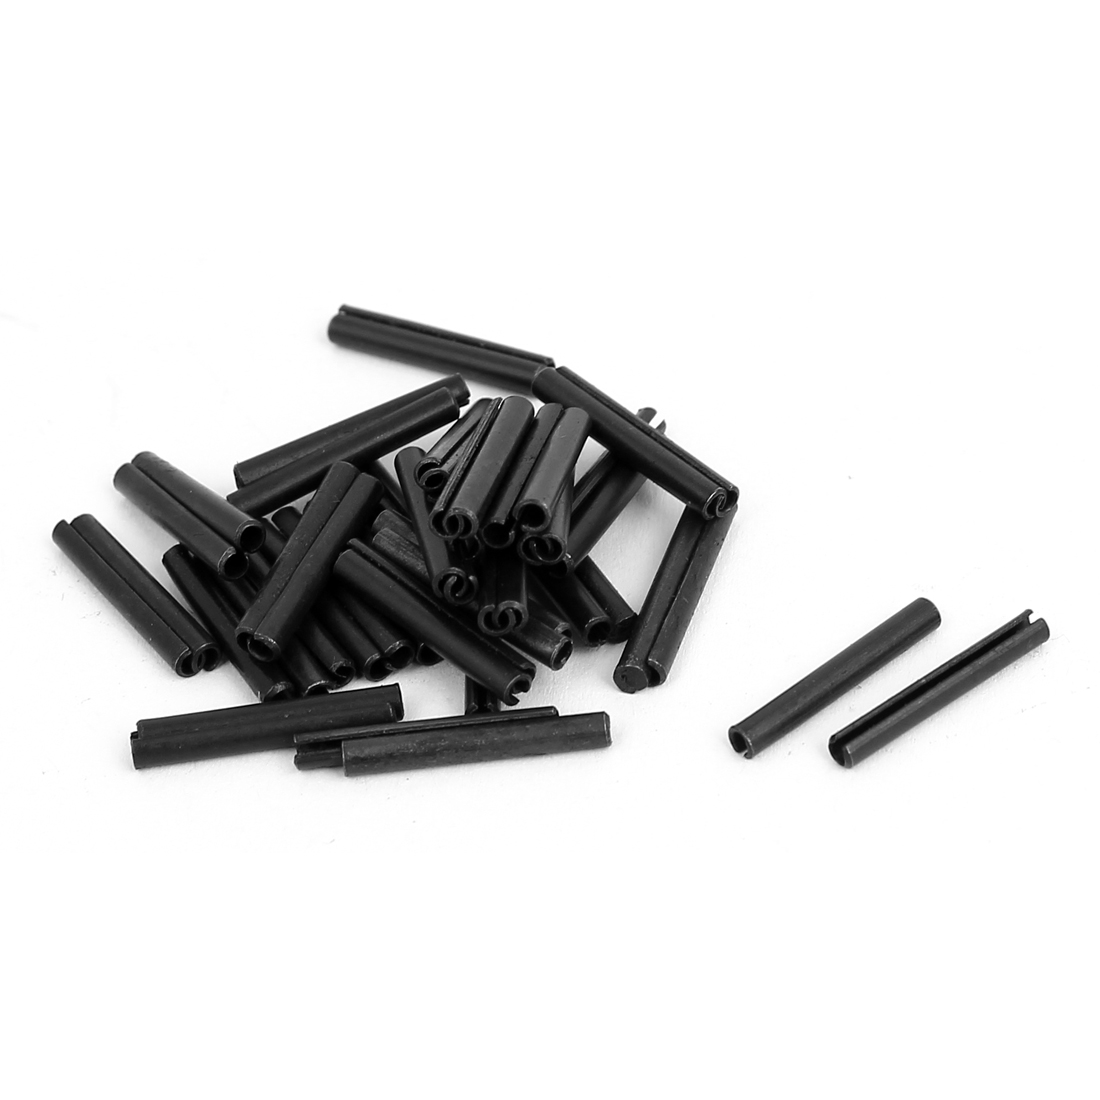 50pcs Carbon Steel Split Spring Dowel Tension Roll Pin Hardware M2x16mm